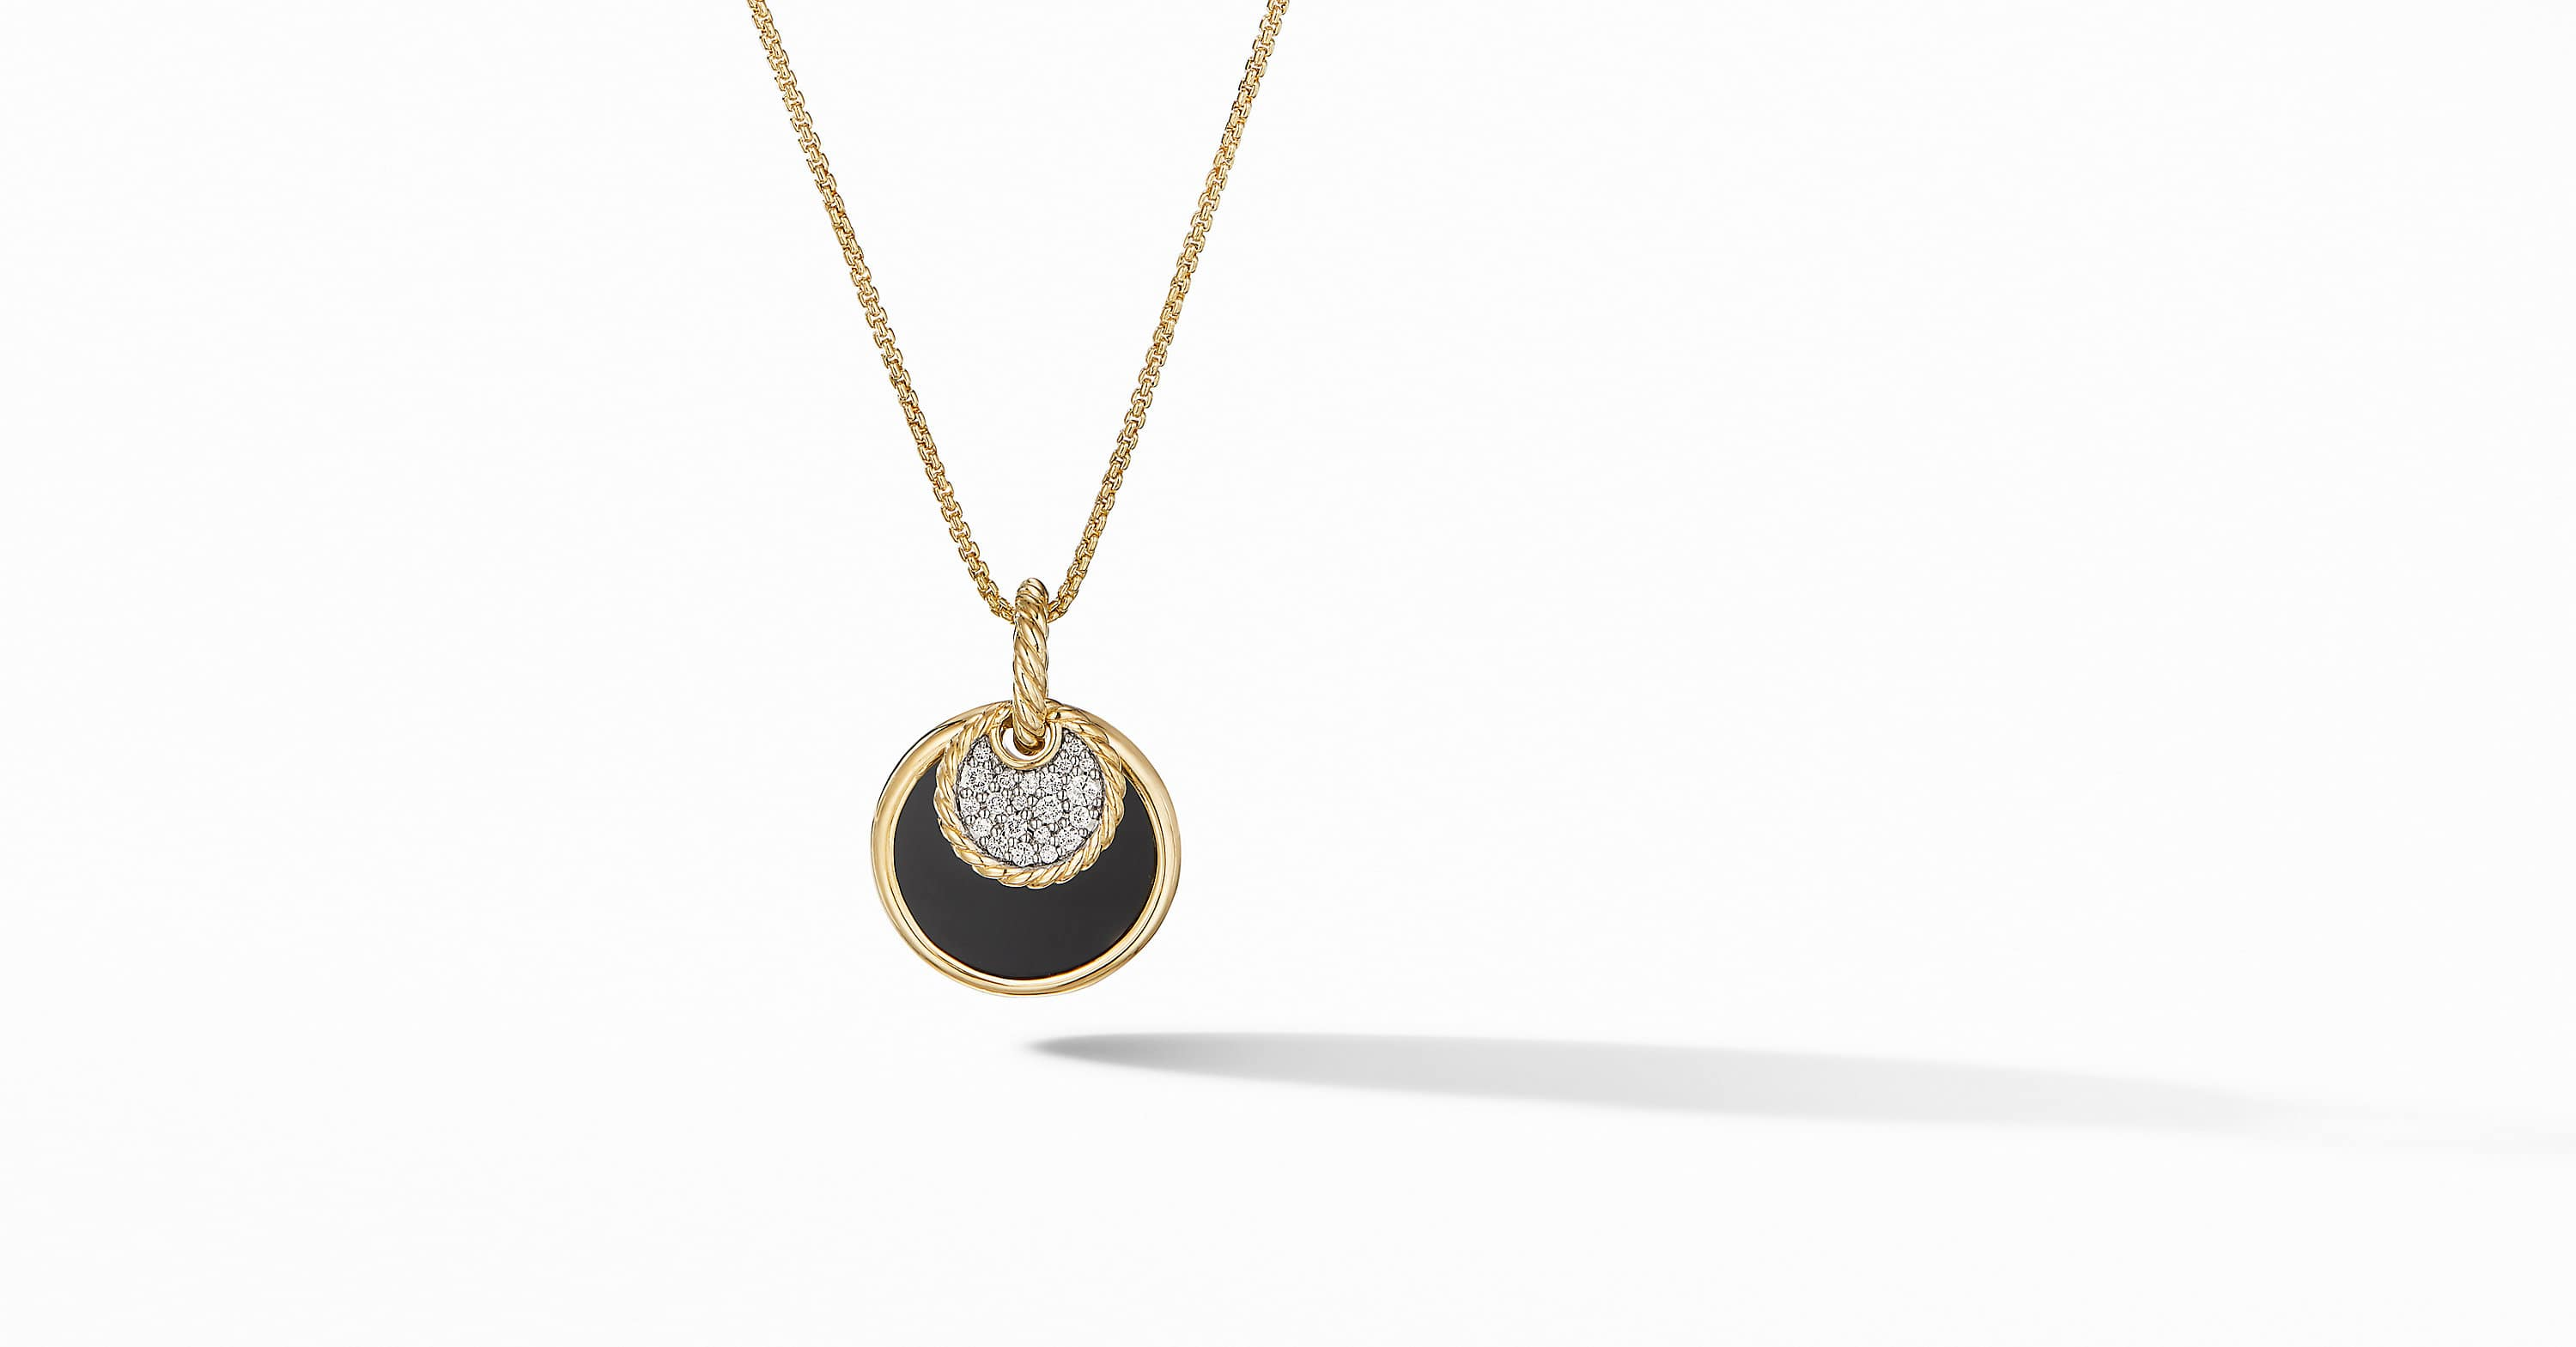 DY Elements Convertible Pendant Necklace in 18K Yellow Gold with Diamonds, 21.5mm